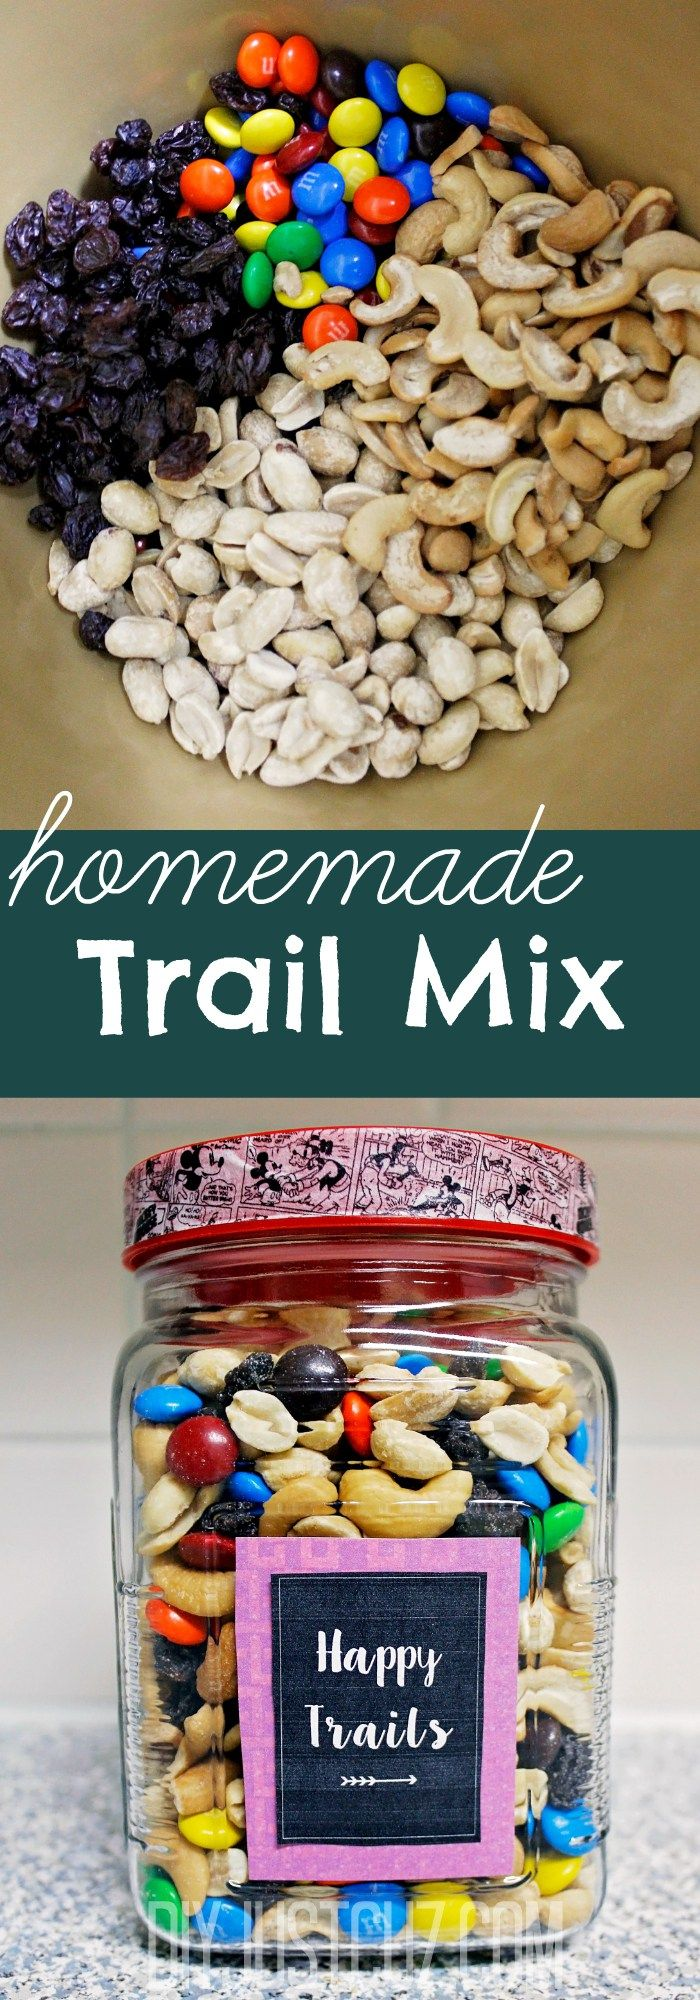 Stop buying expensive premade trail mix! Instead, check out these super simple recipes for homemade trail mix - so good you'll never buy it again! @diyjustcuz